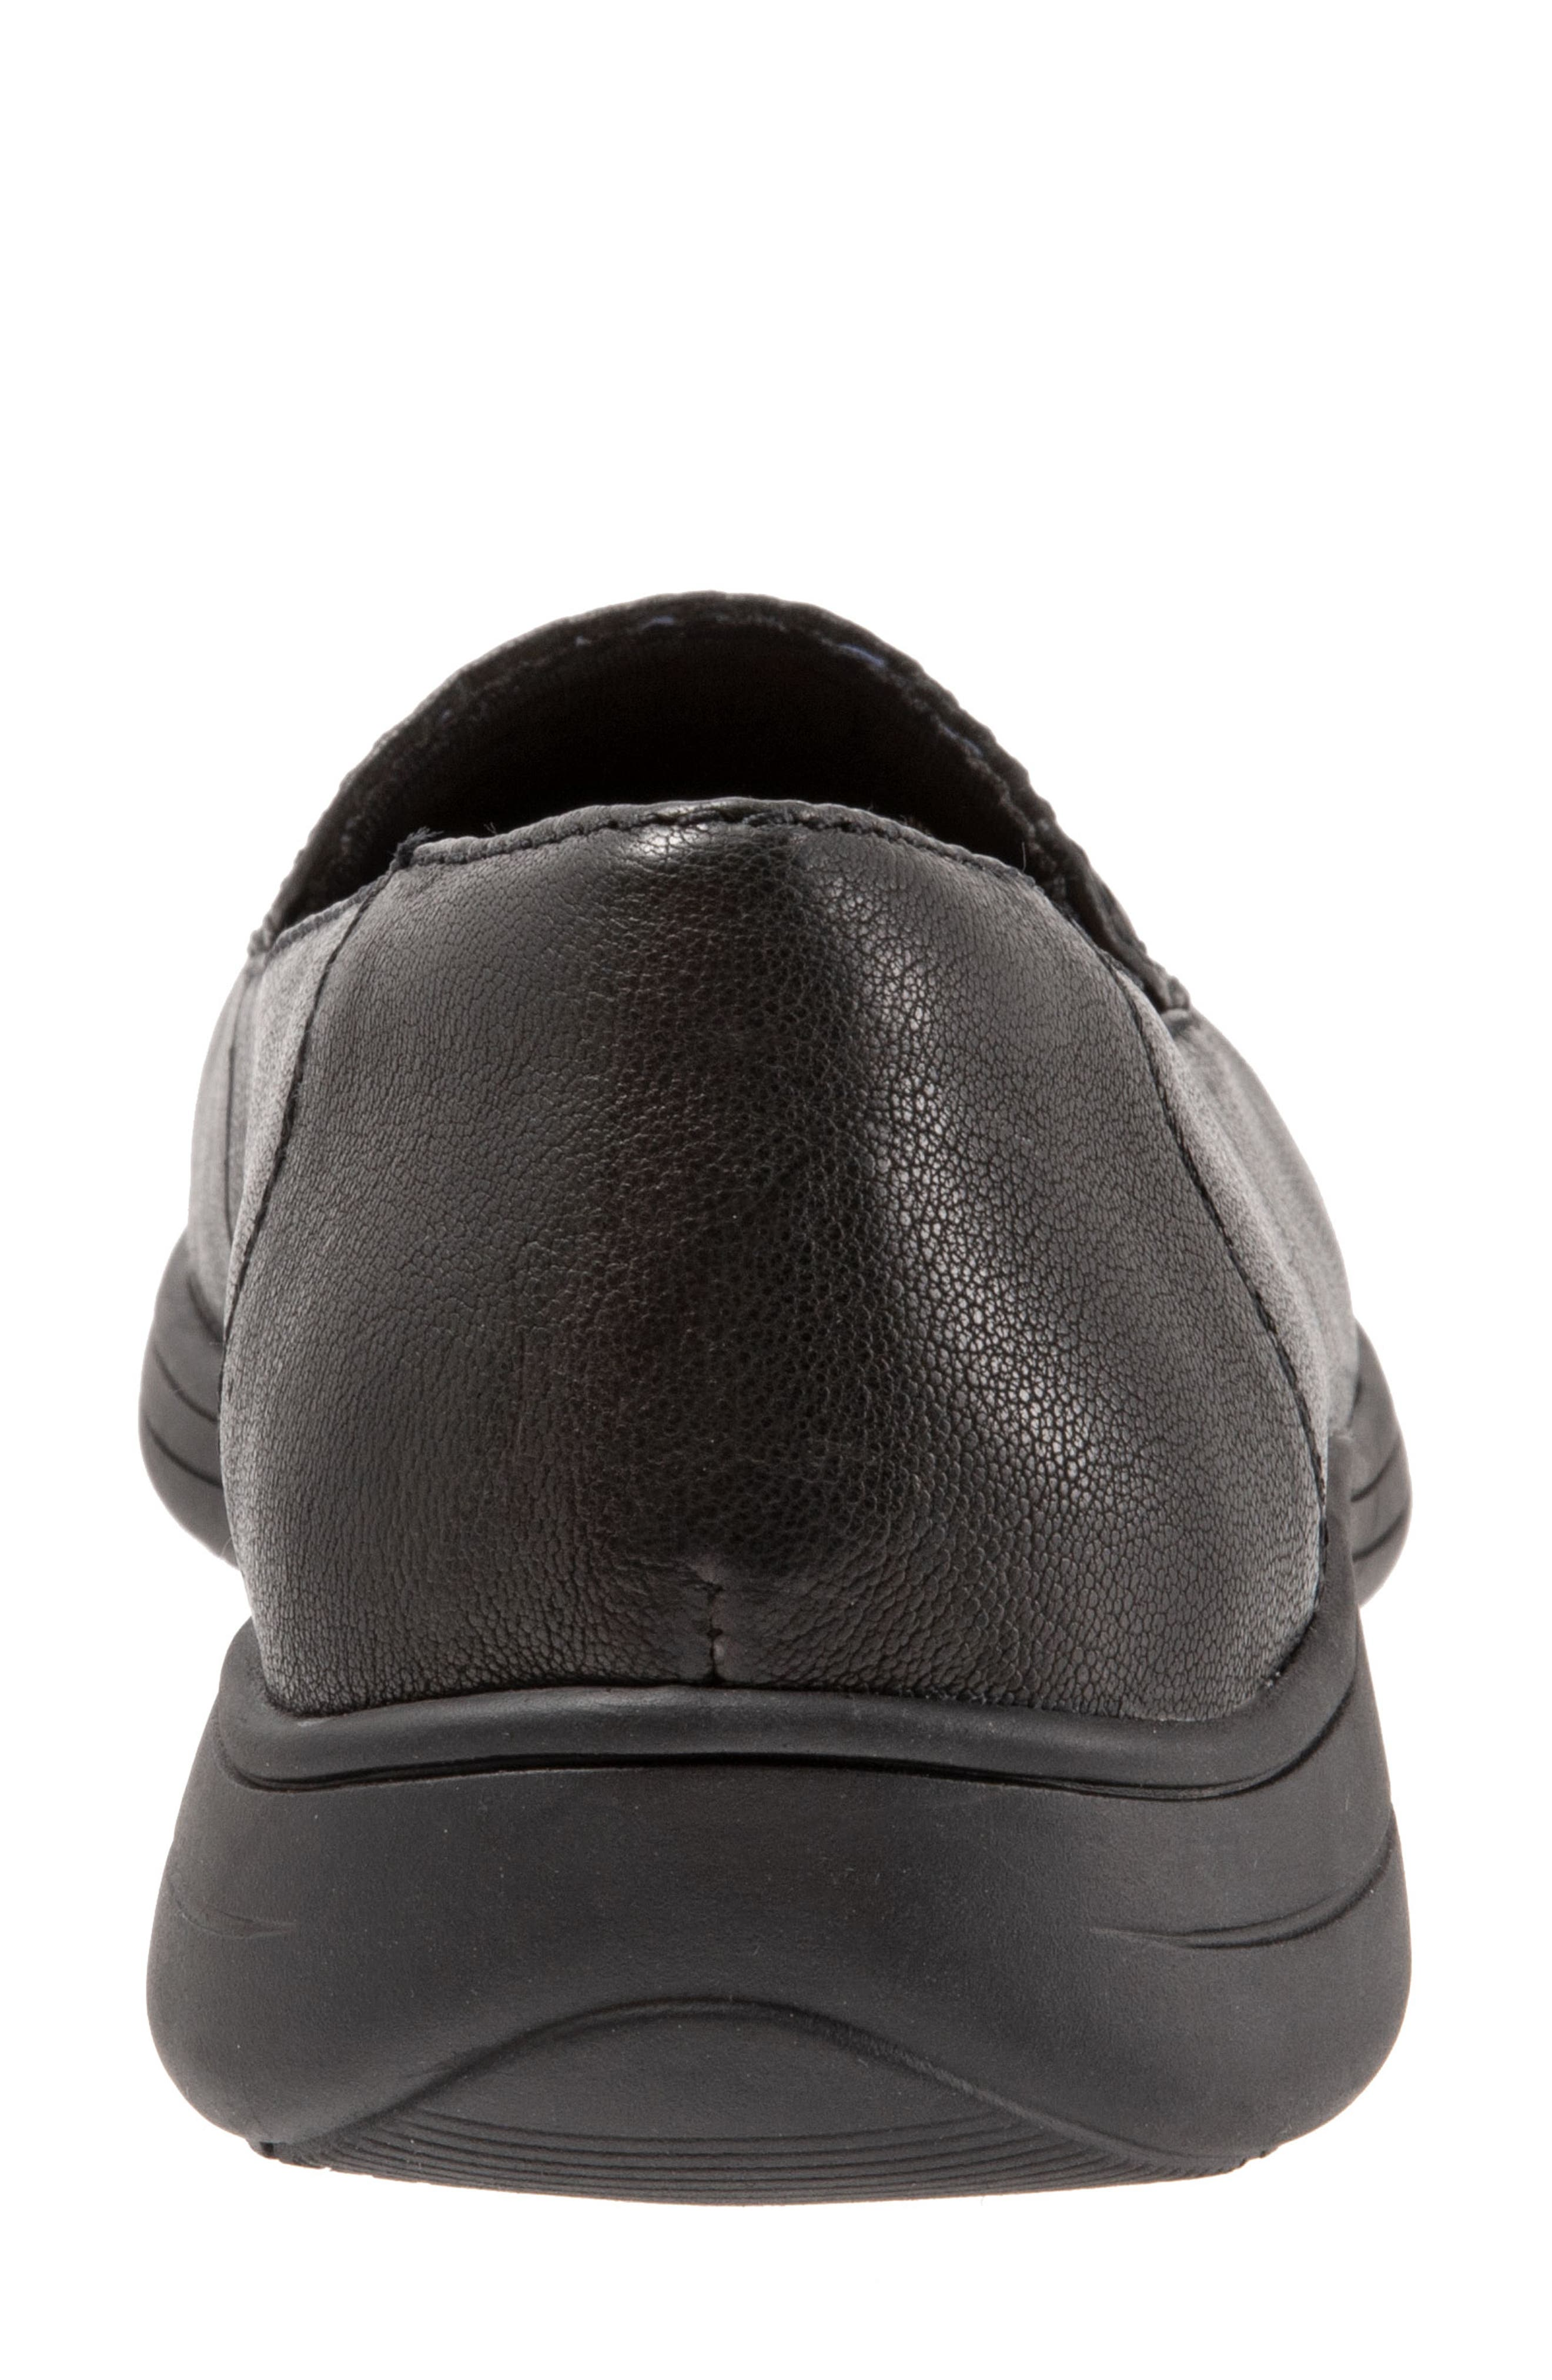 Jacob Loafer,                             Alternate thumbnail 7, color,                             BLACK LEATHER